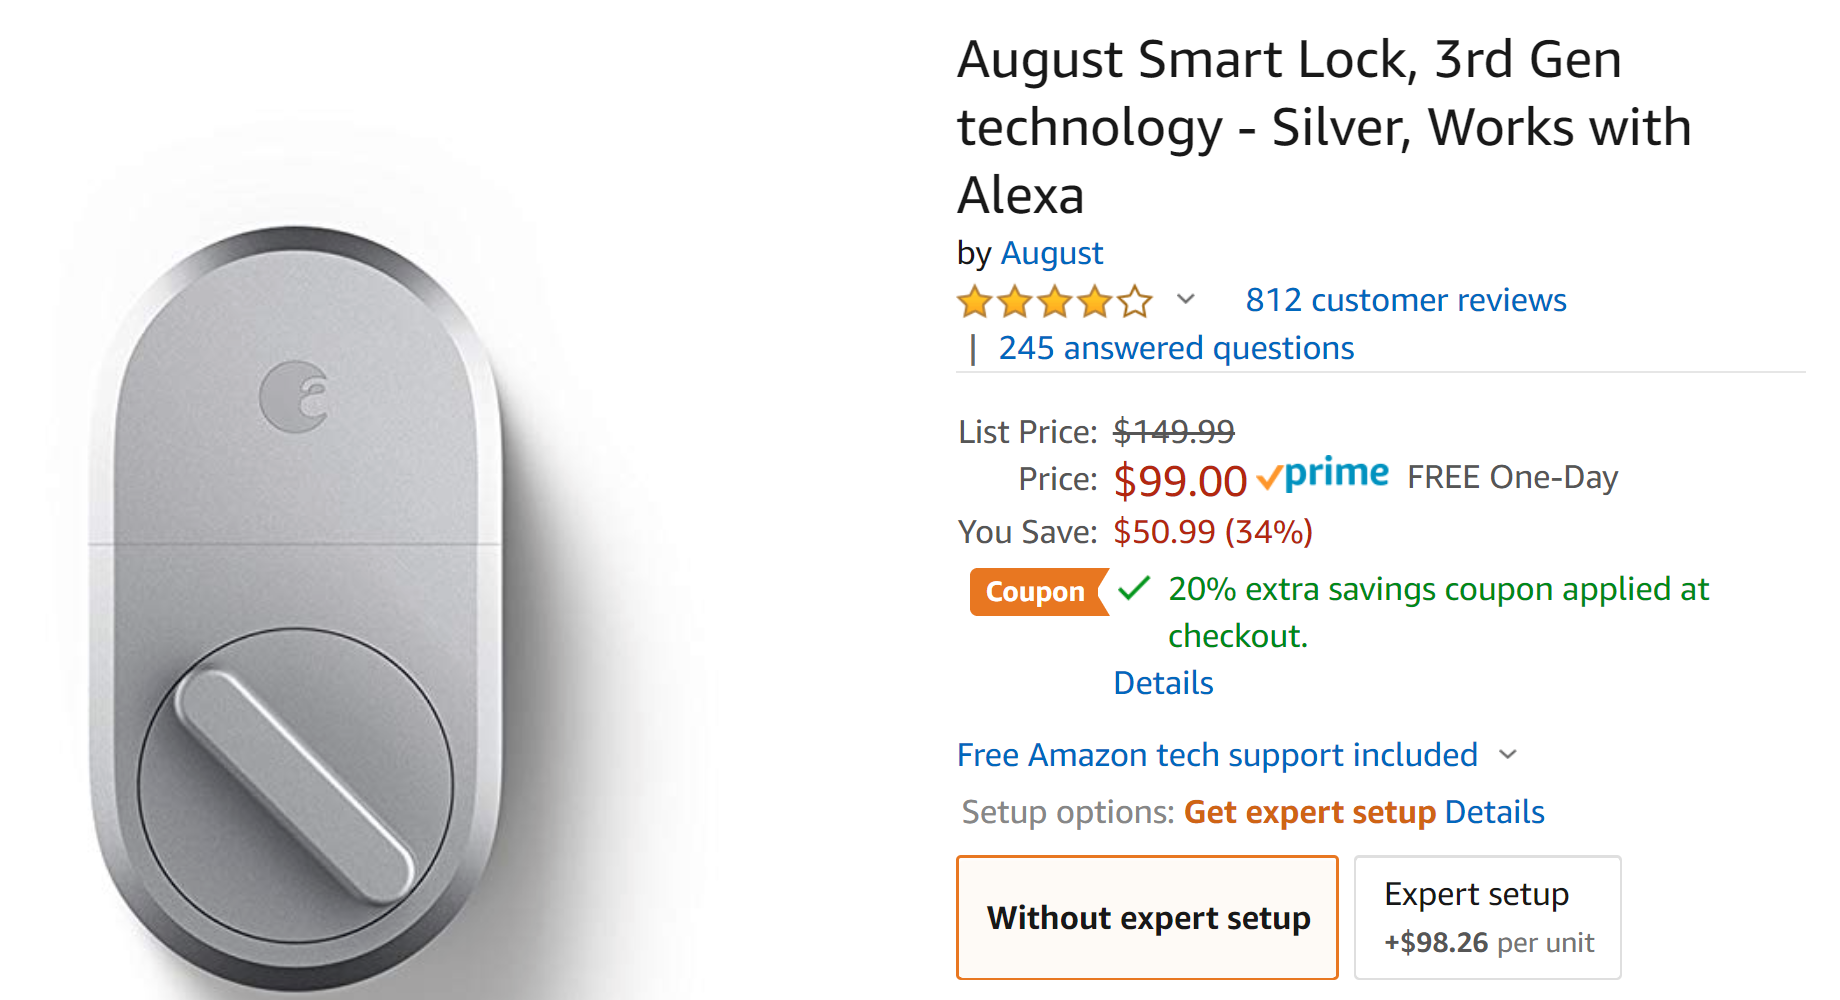 August Smart Lock is just $99 ($51 off) on Amazon right now